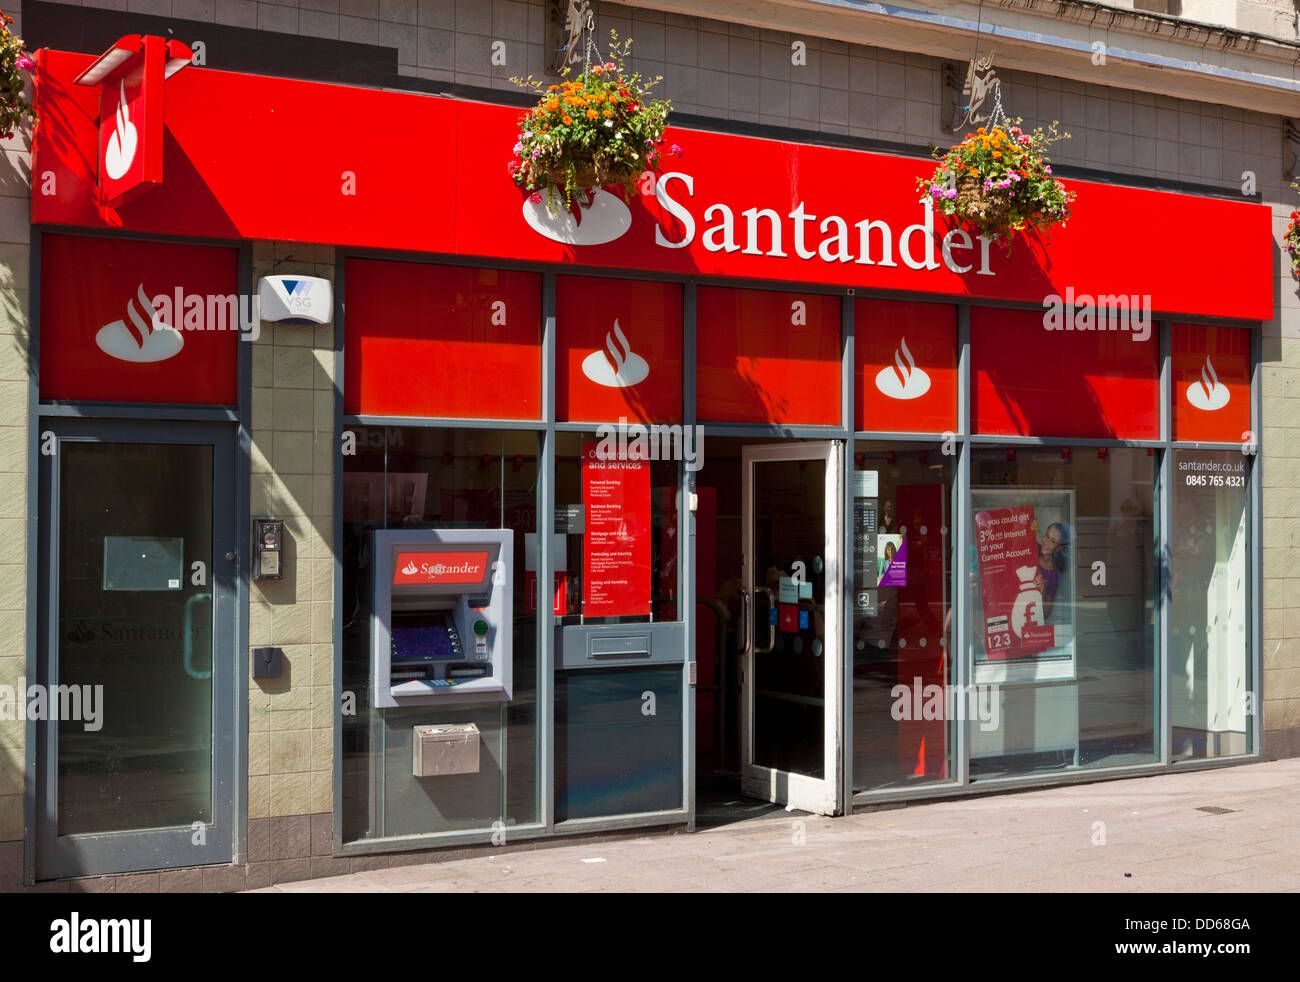 Exterior of the Santander bank branch on Queen street Cardiff South Glmorgan South Wales UK GB EU Europe - Stock Image